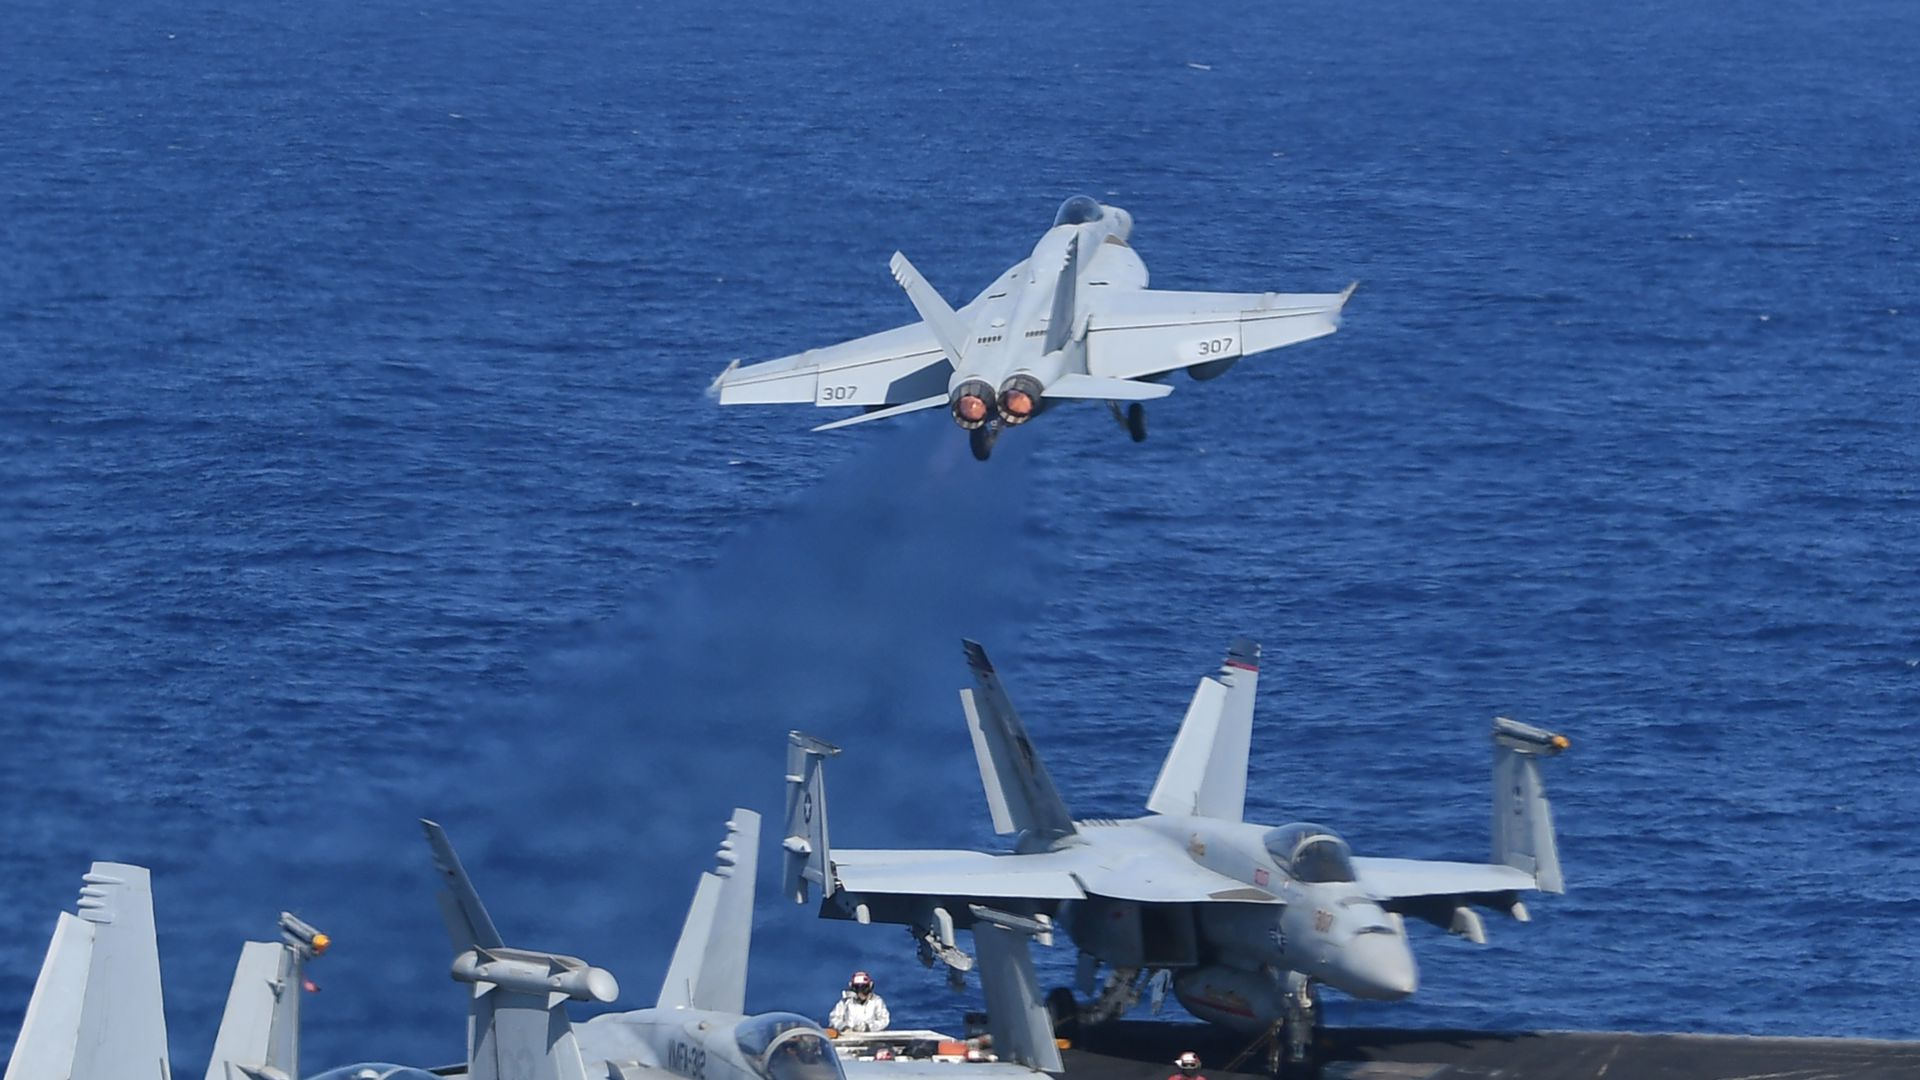 F18 fighter jet takes off from aircraft carrier